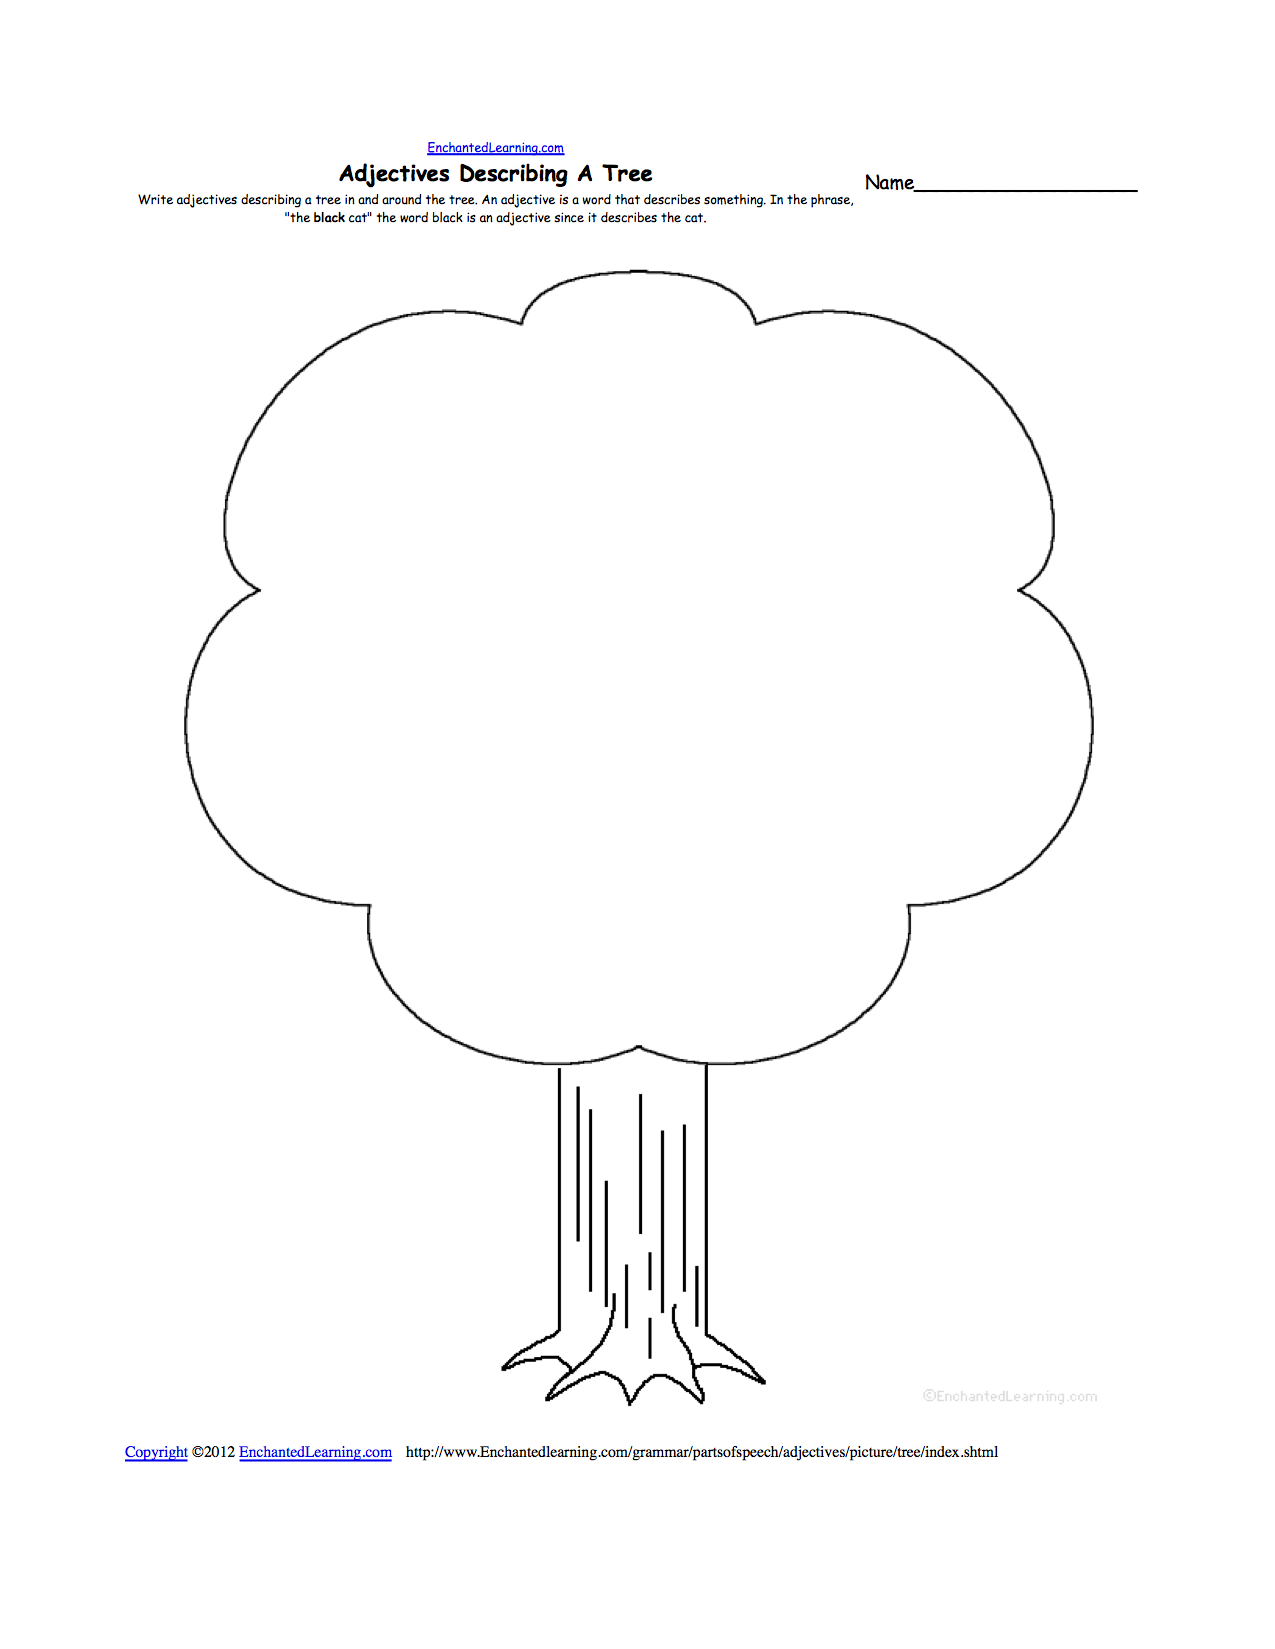 trees at enchantedlearning com